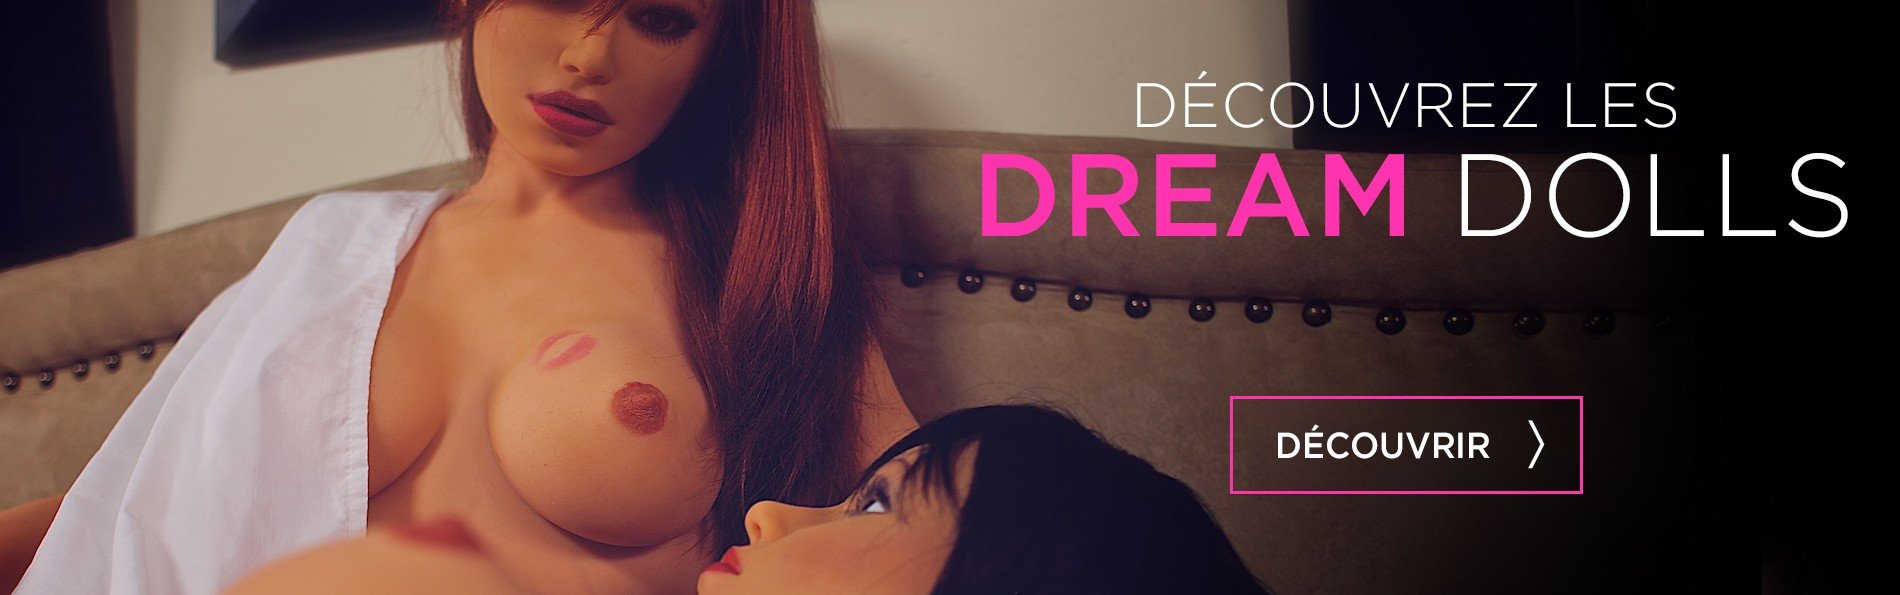 SLIDES-DREAM-DOLLS-4